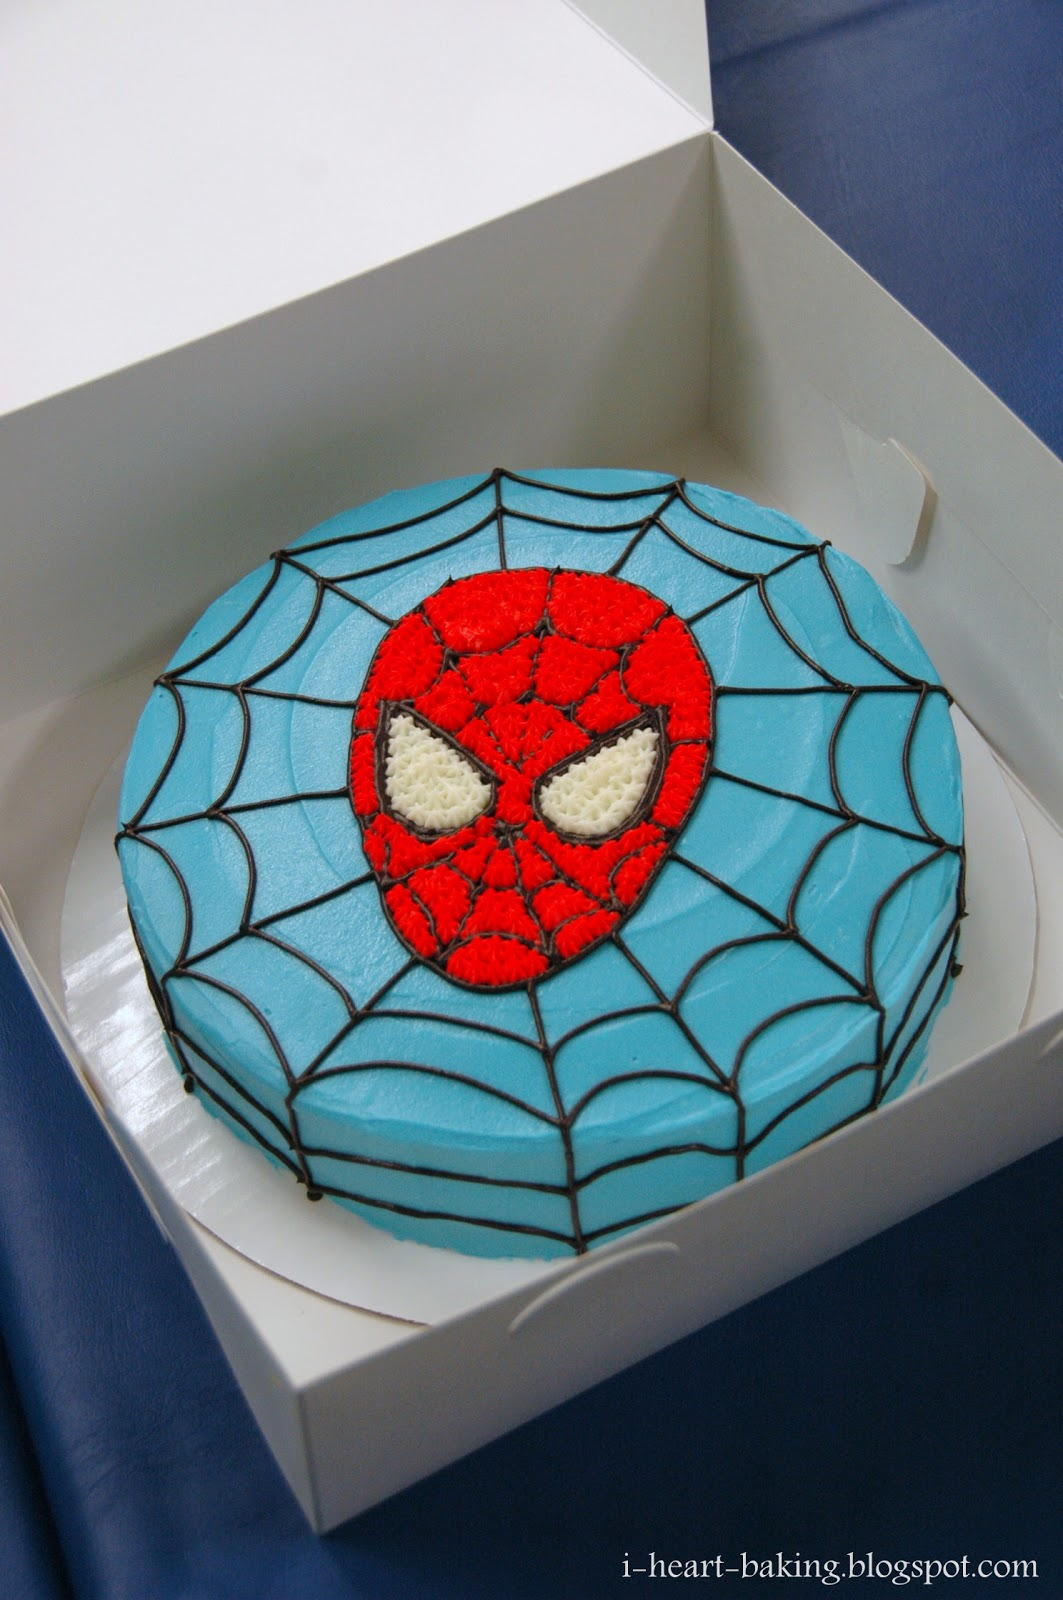 Birthday Cake Designs Spiderman : i heart baking!: spiderman birthday cake